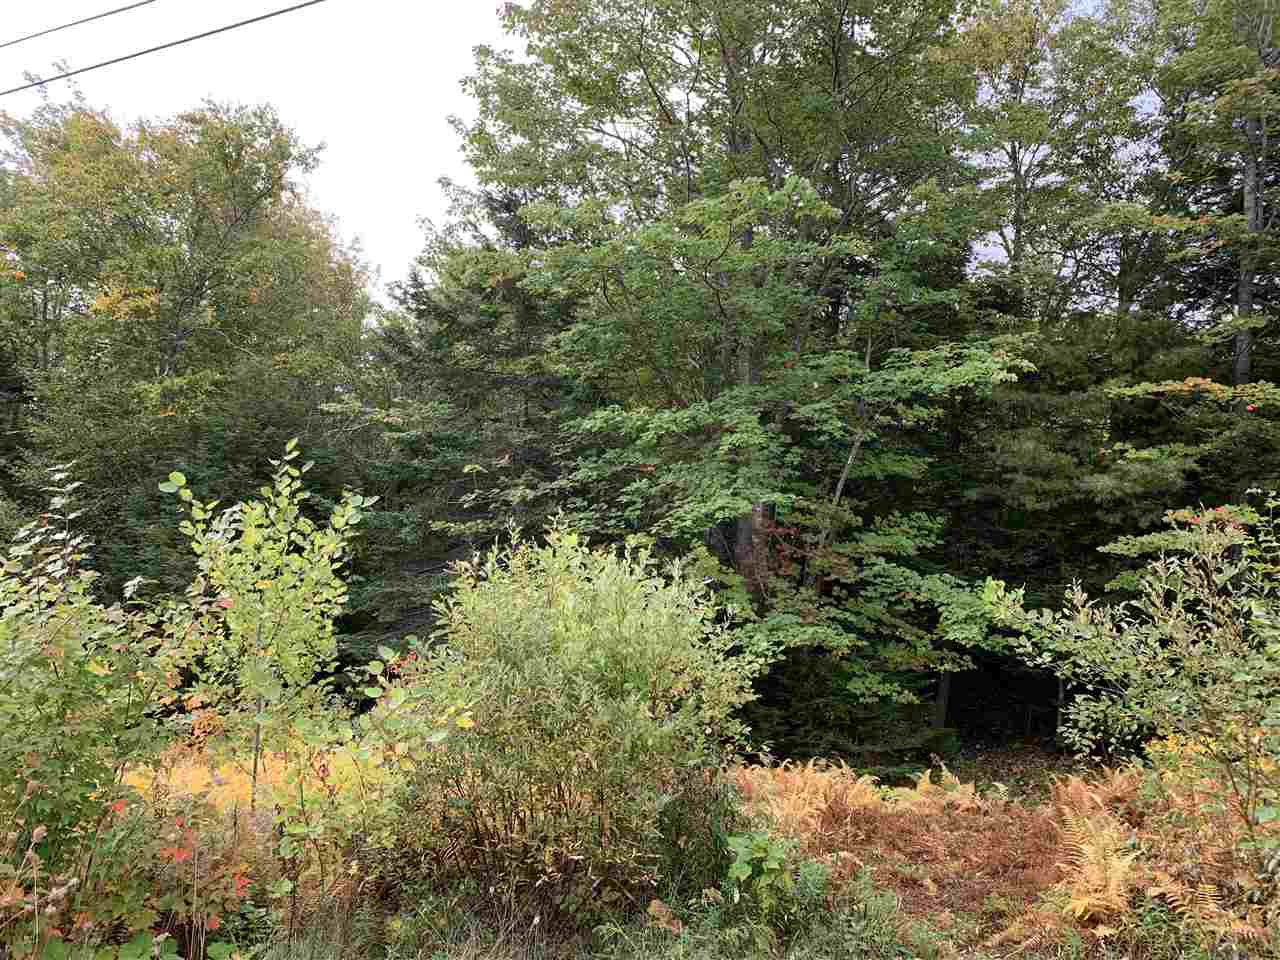 Main Photo: Lot 7-8 Logan Road in Frasers Mountain: 108-Rural Pictou County Vacant Land for sale (Northern Region)  : MLS®# 202020090